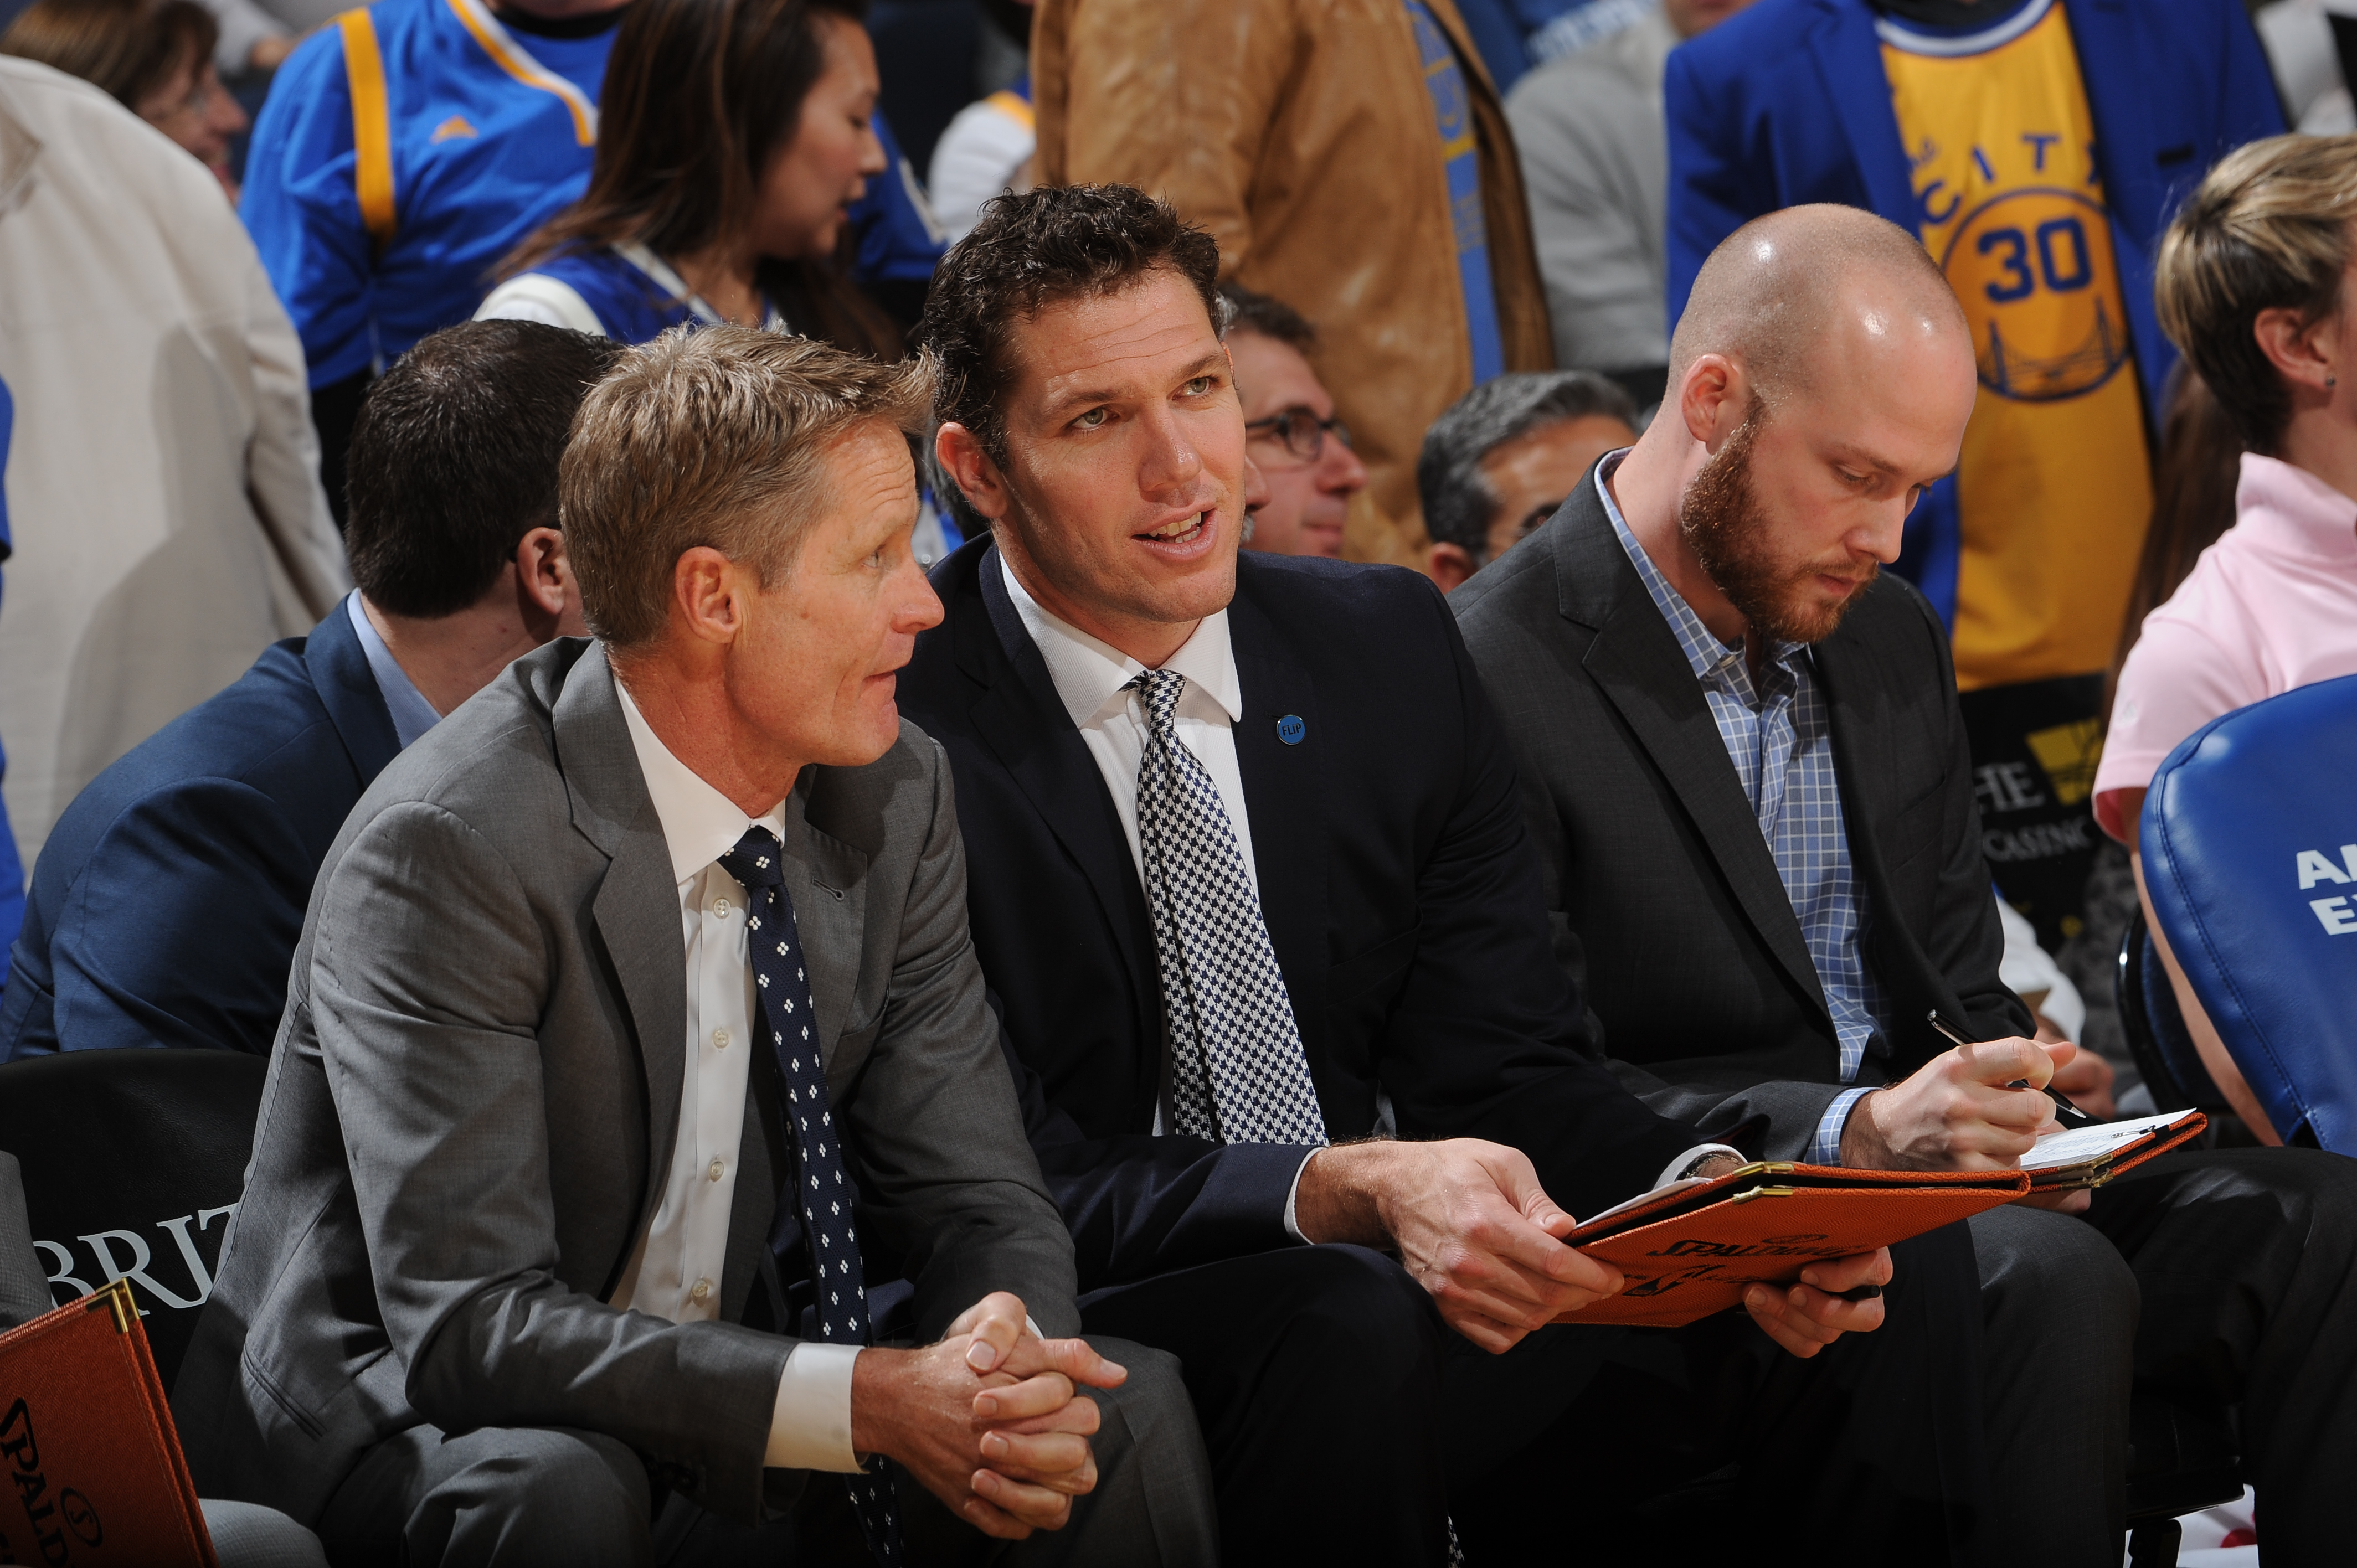 OAKLAND, CA - JANUARY 25: Head coach Steve Kerr chats with assistant coach Luke Walton of the Golden State Warriors while facing the San Antonio Spurs on January 25, 2016 at Oracle Arena in Oakland, California. (Photo by Noah Graham/NBAE via Getty Images)